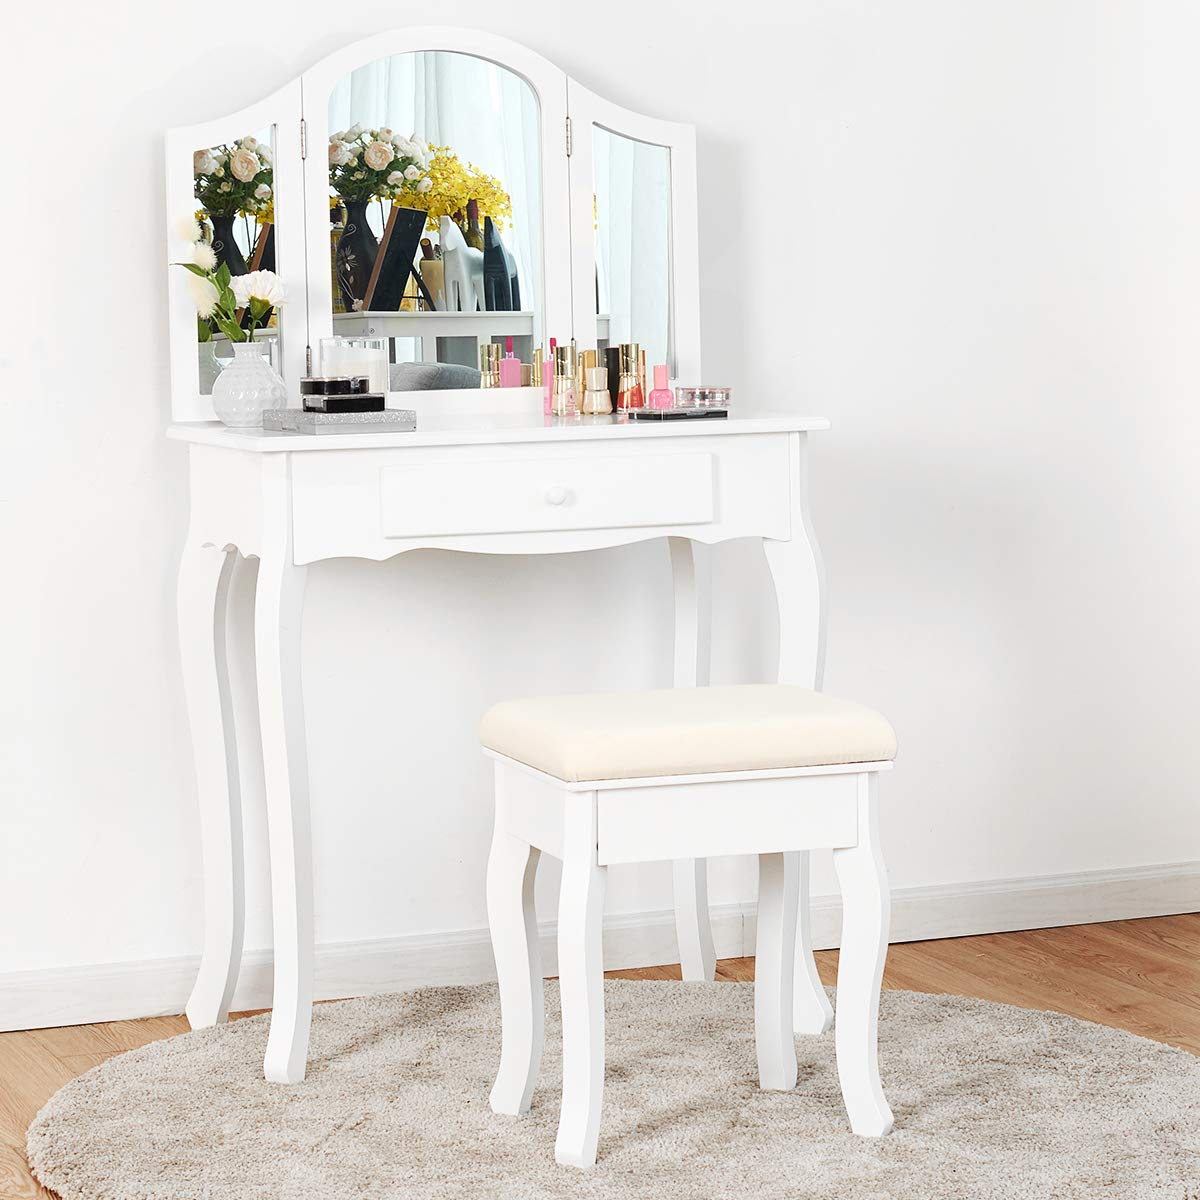 Giantex Vanity Set with Tri-Folding Mirror and Cushioned Stool, Wooden Makeup Table and Stool Set, Modern Bathroom Bedroom Vanity Desk, Women Girls Kids Vanity Set White